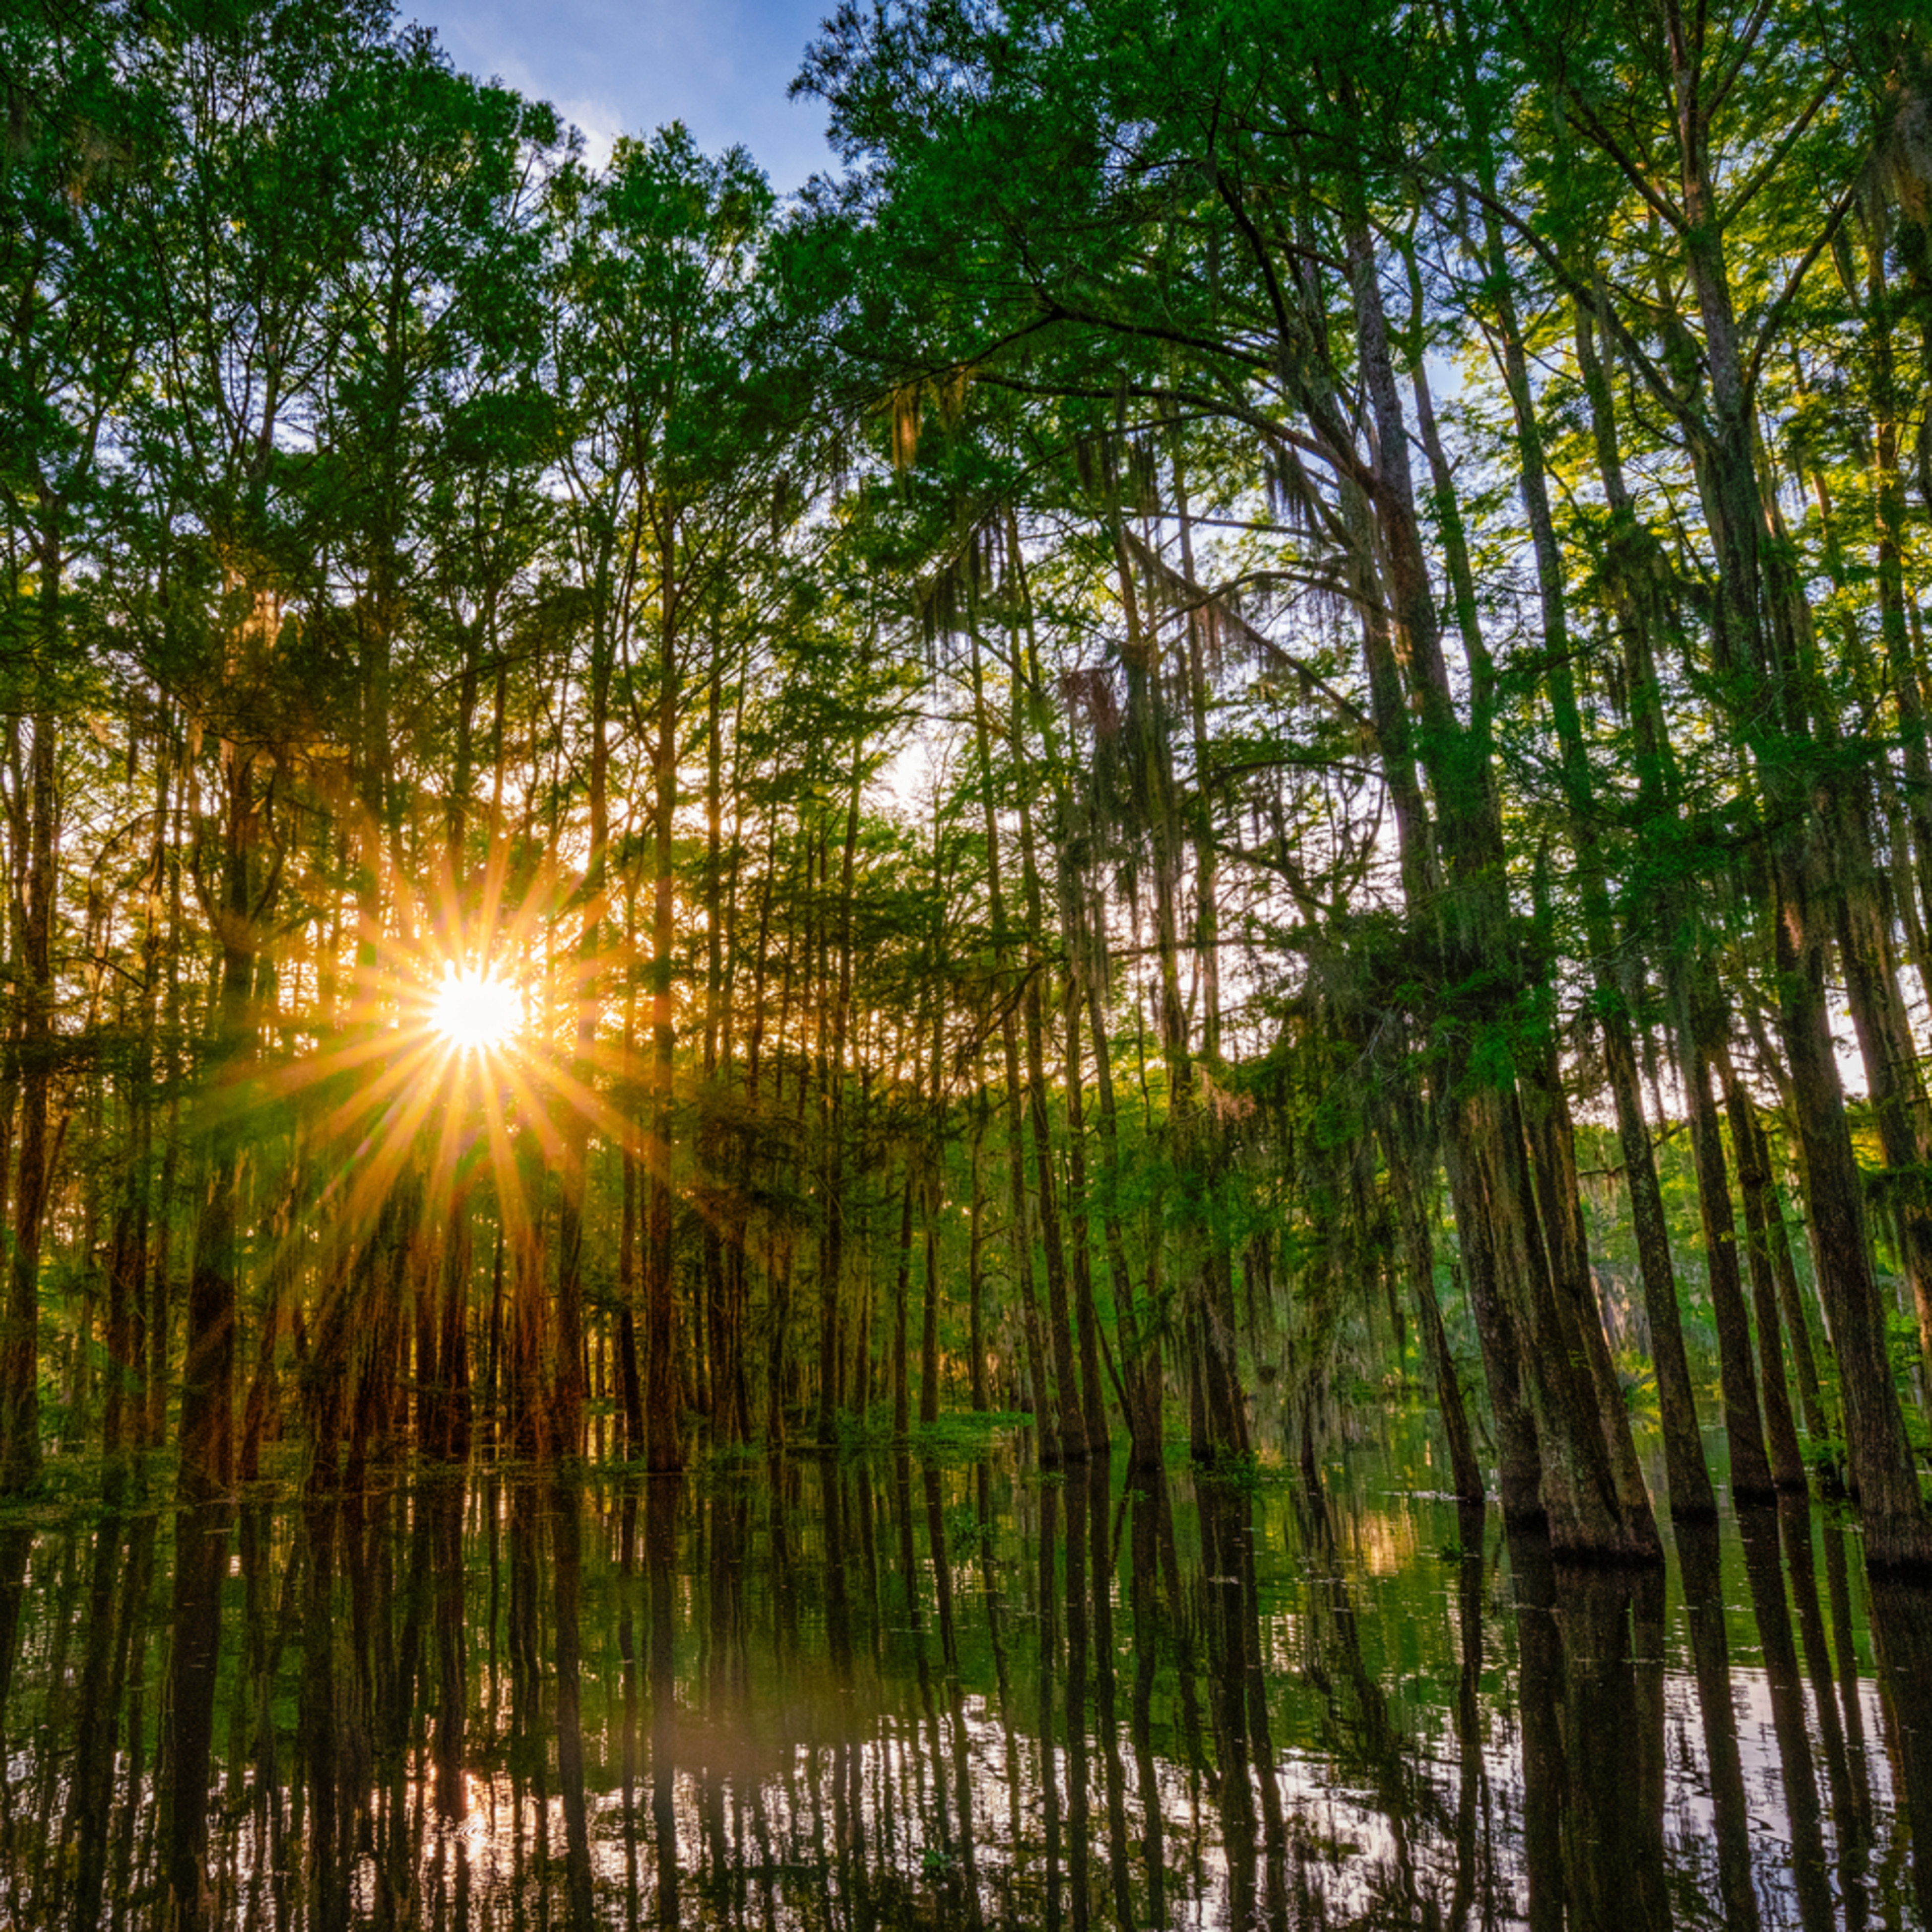 Andy crawford photography shining through the swamp pjpdzs